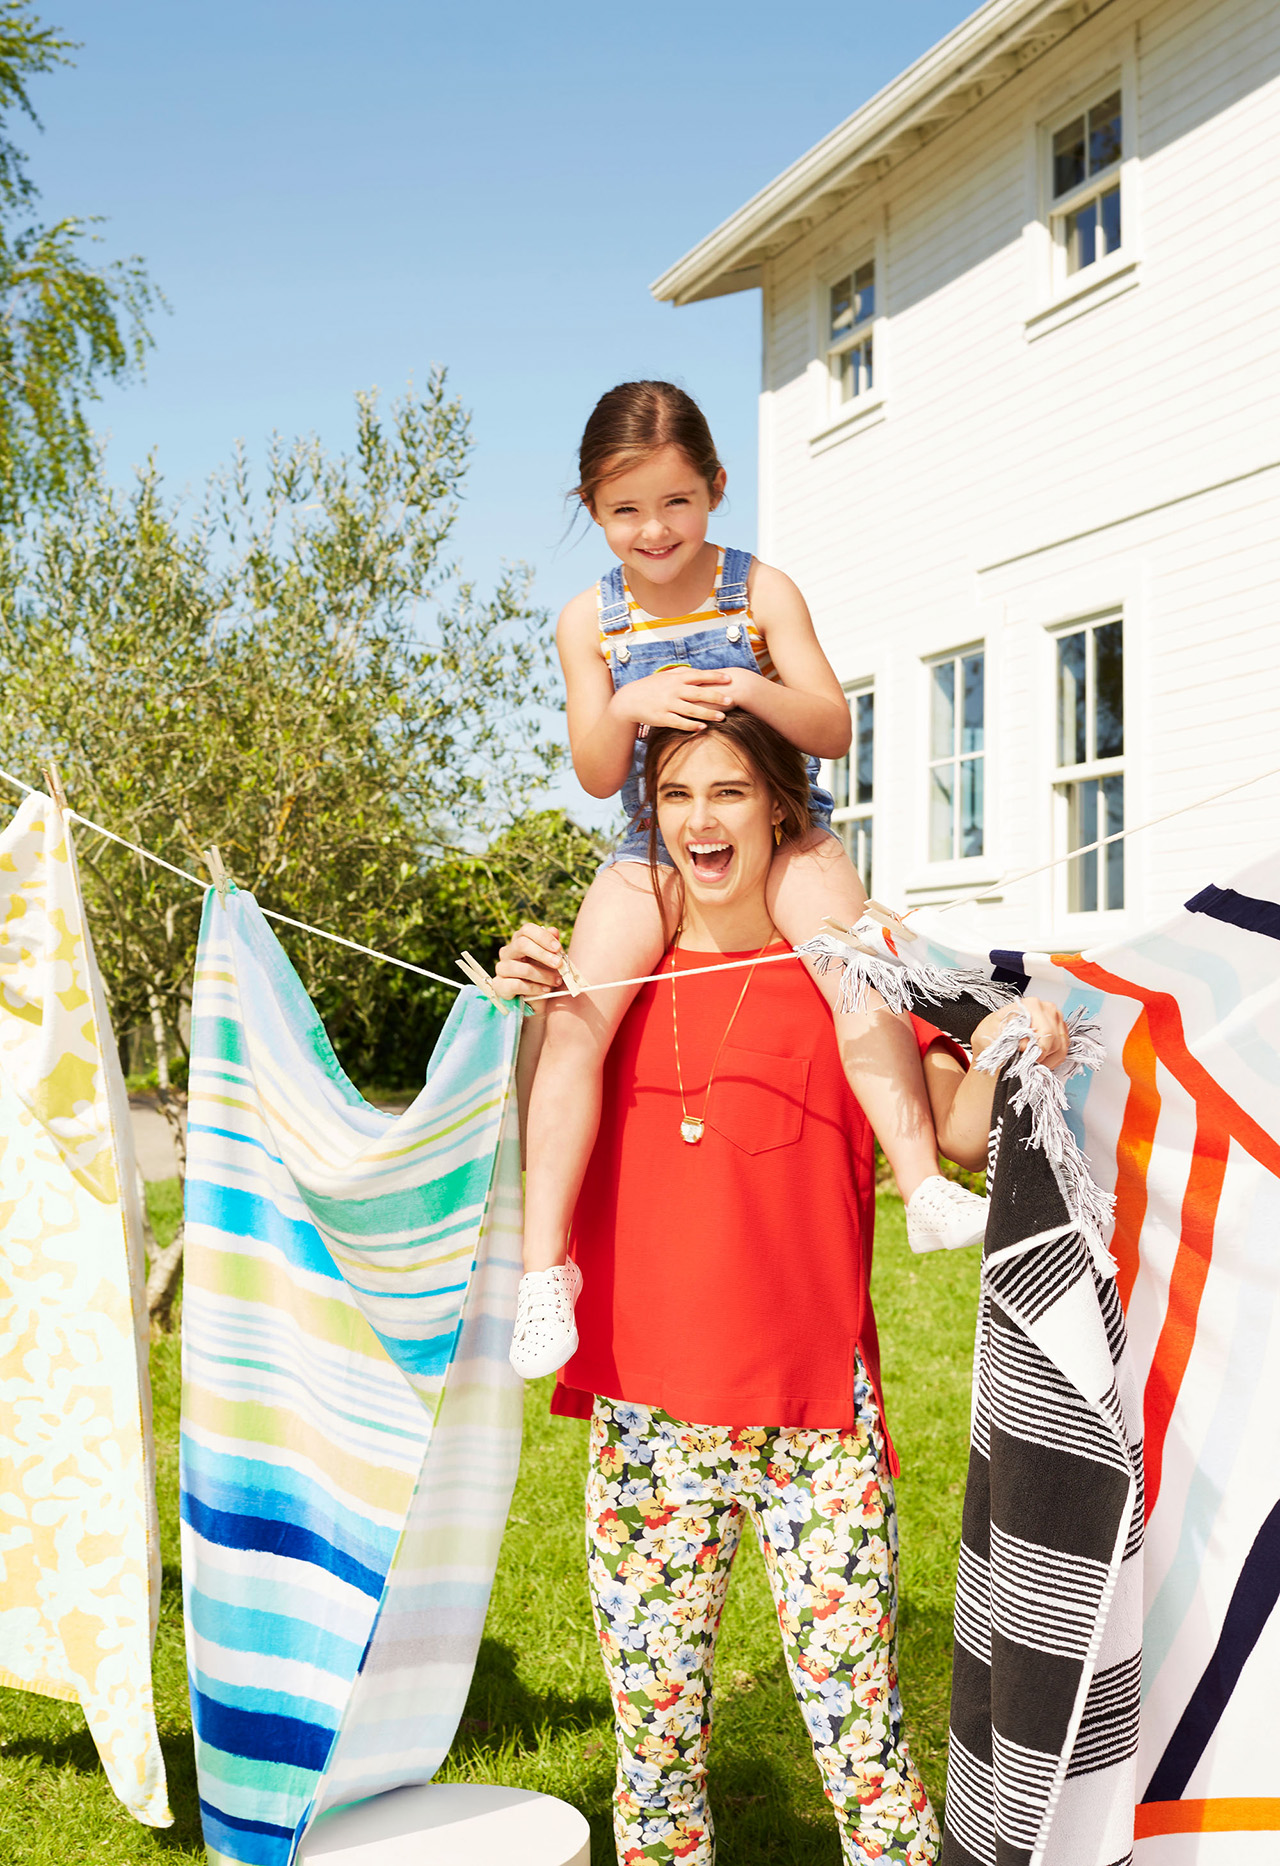 laundry chores with mom and daughter hanging clothing